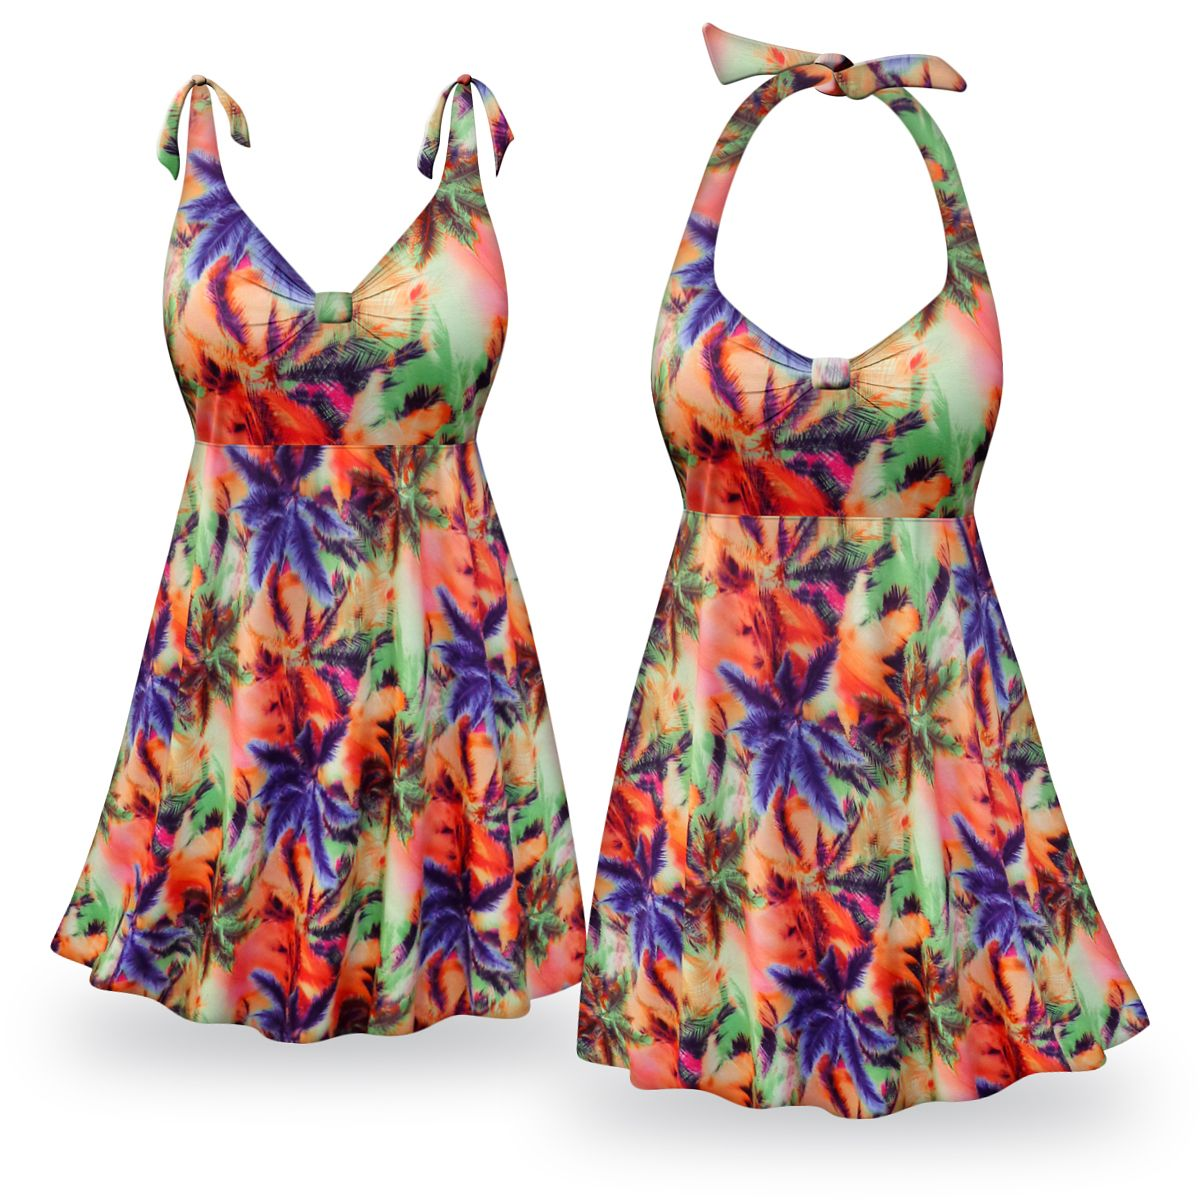 6137f38ebb556 Customizable Palm Sunset Print Halter or Shoulder Strap 2pc Plus Size  Swimsuit SwimDress